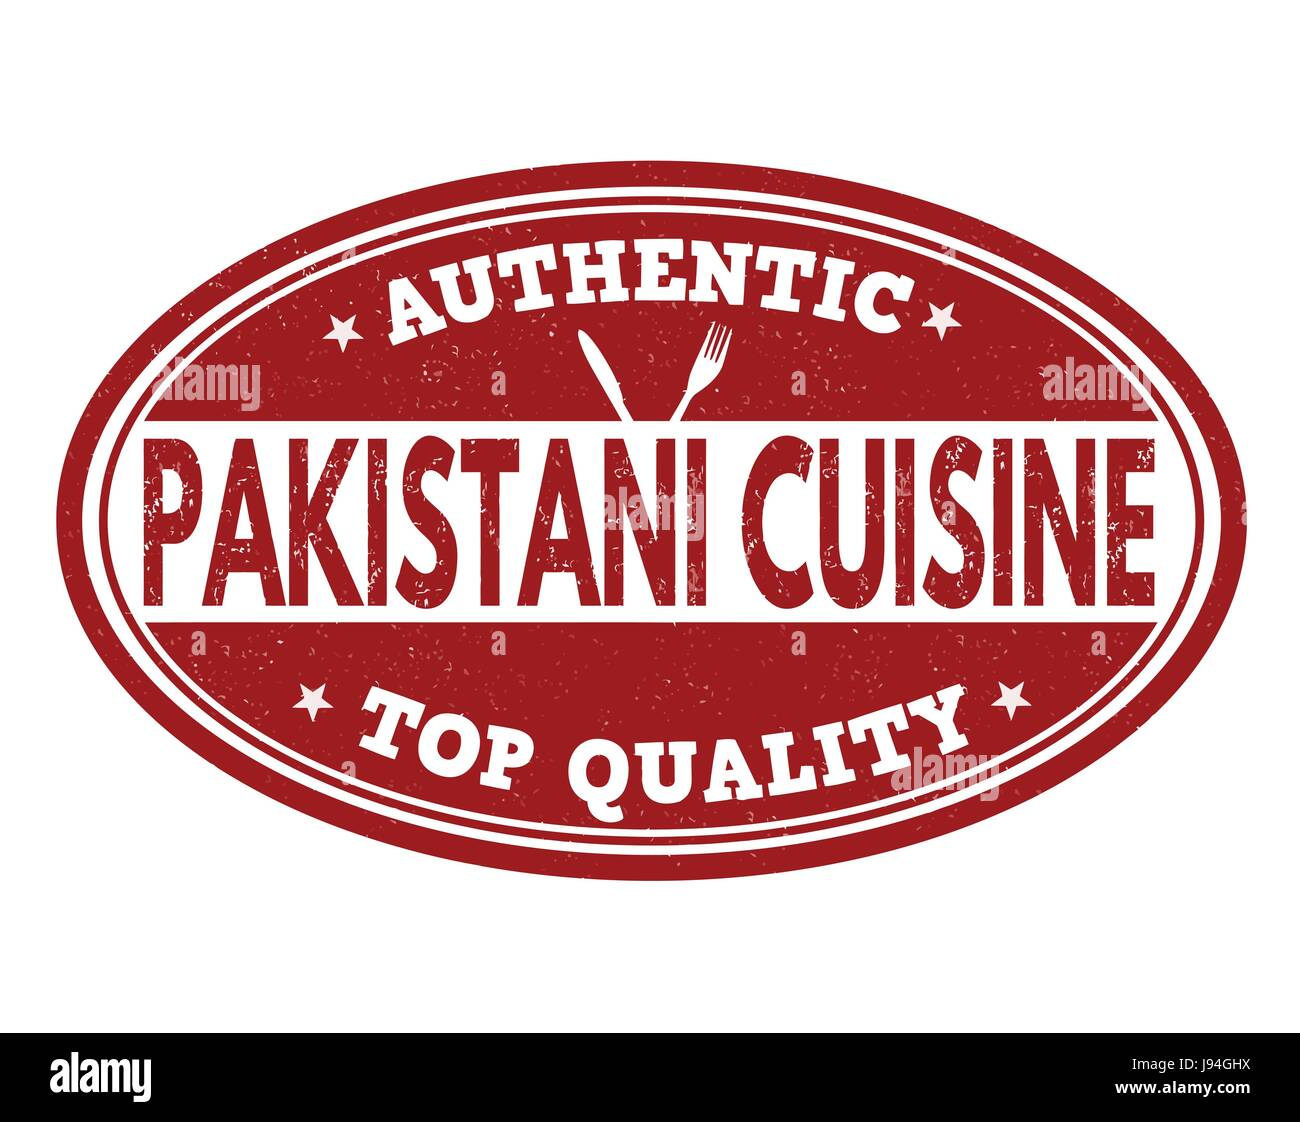 Authentic pakistani cuisine grunge rubber stamp on white background, vector illustration - Stock Image